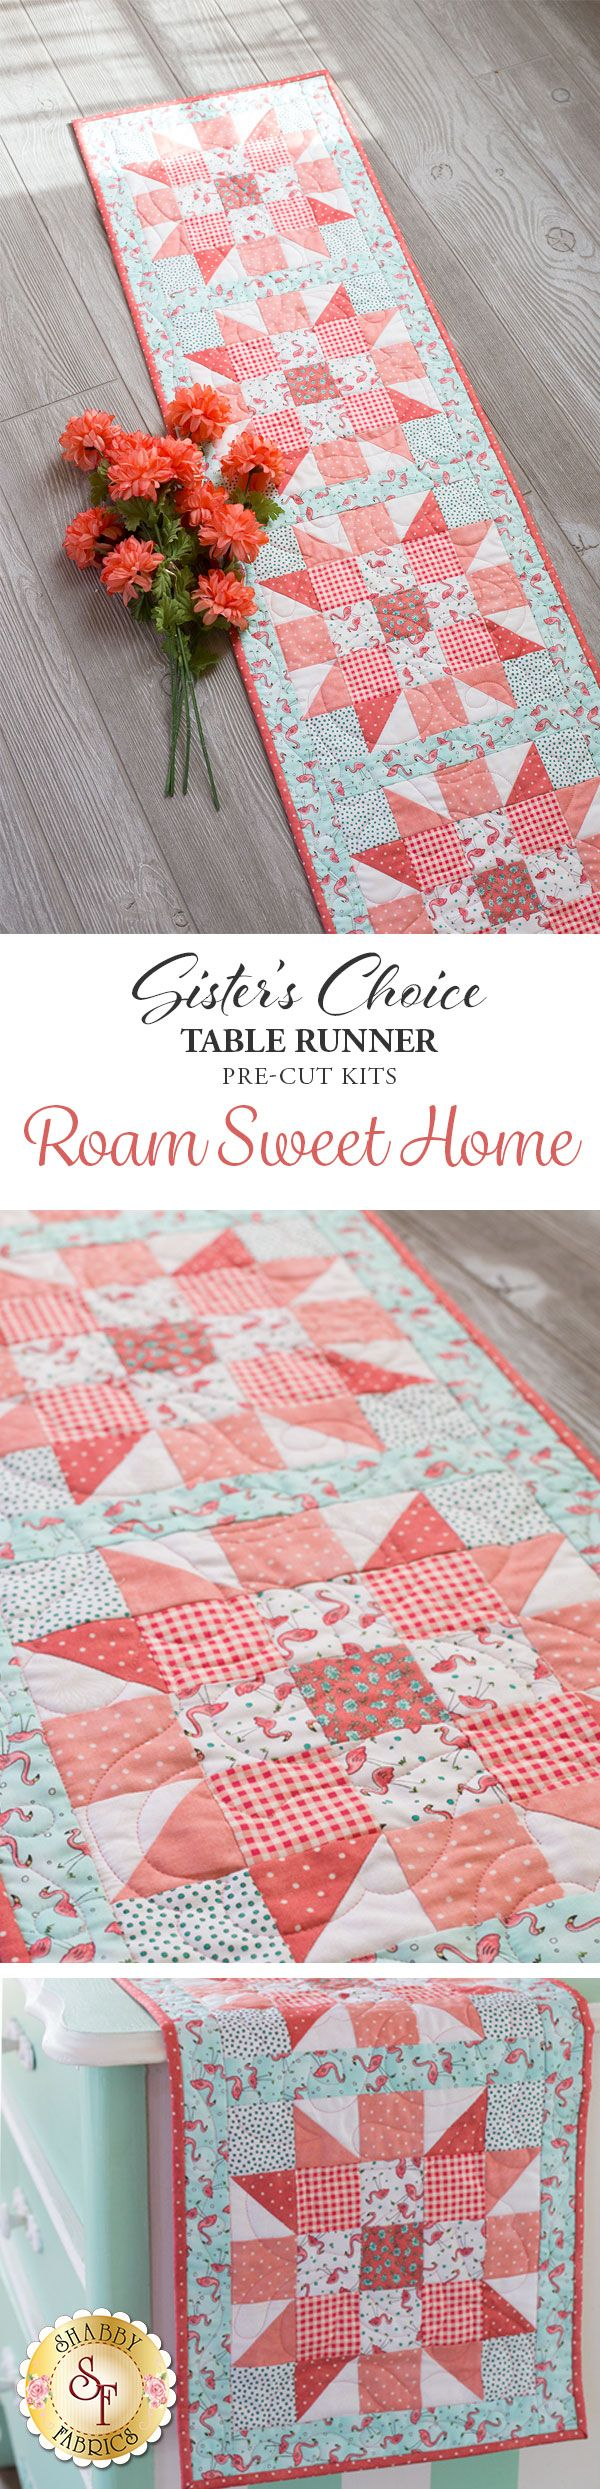 """Sister's Choice Table Runner Pre-Cut Kit - Roam Sweet Home A quilter's dream come true! This stunning Sister's Choice table runner features basic piecing but will wow your guests with its complex look. Piecing is made even simpler with this kit because the fabrics come already steam pressed and pre-cut! Table Runner finishes to 13"""" x 58""""."""